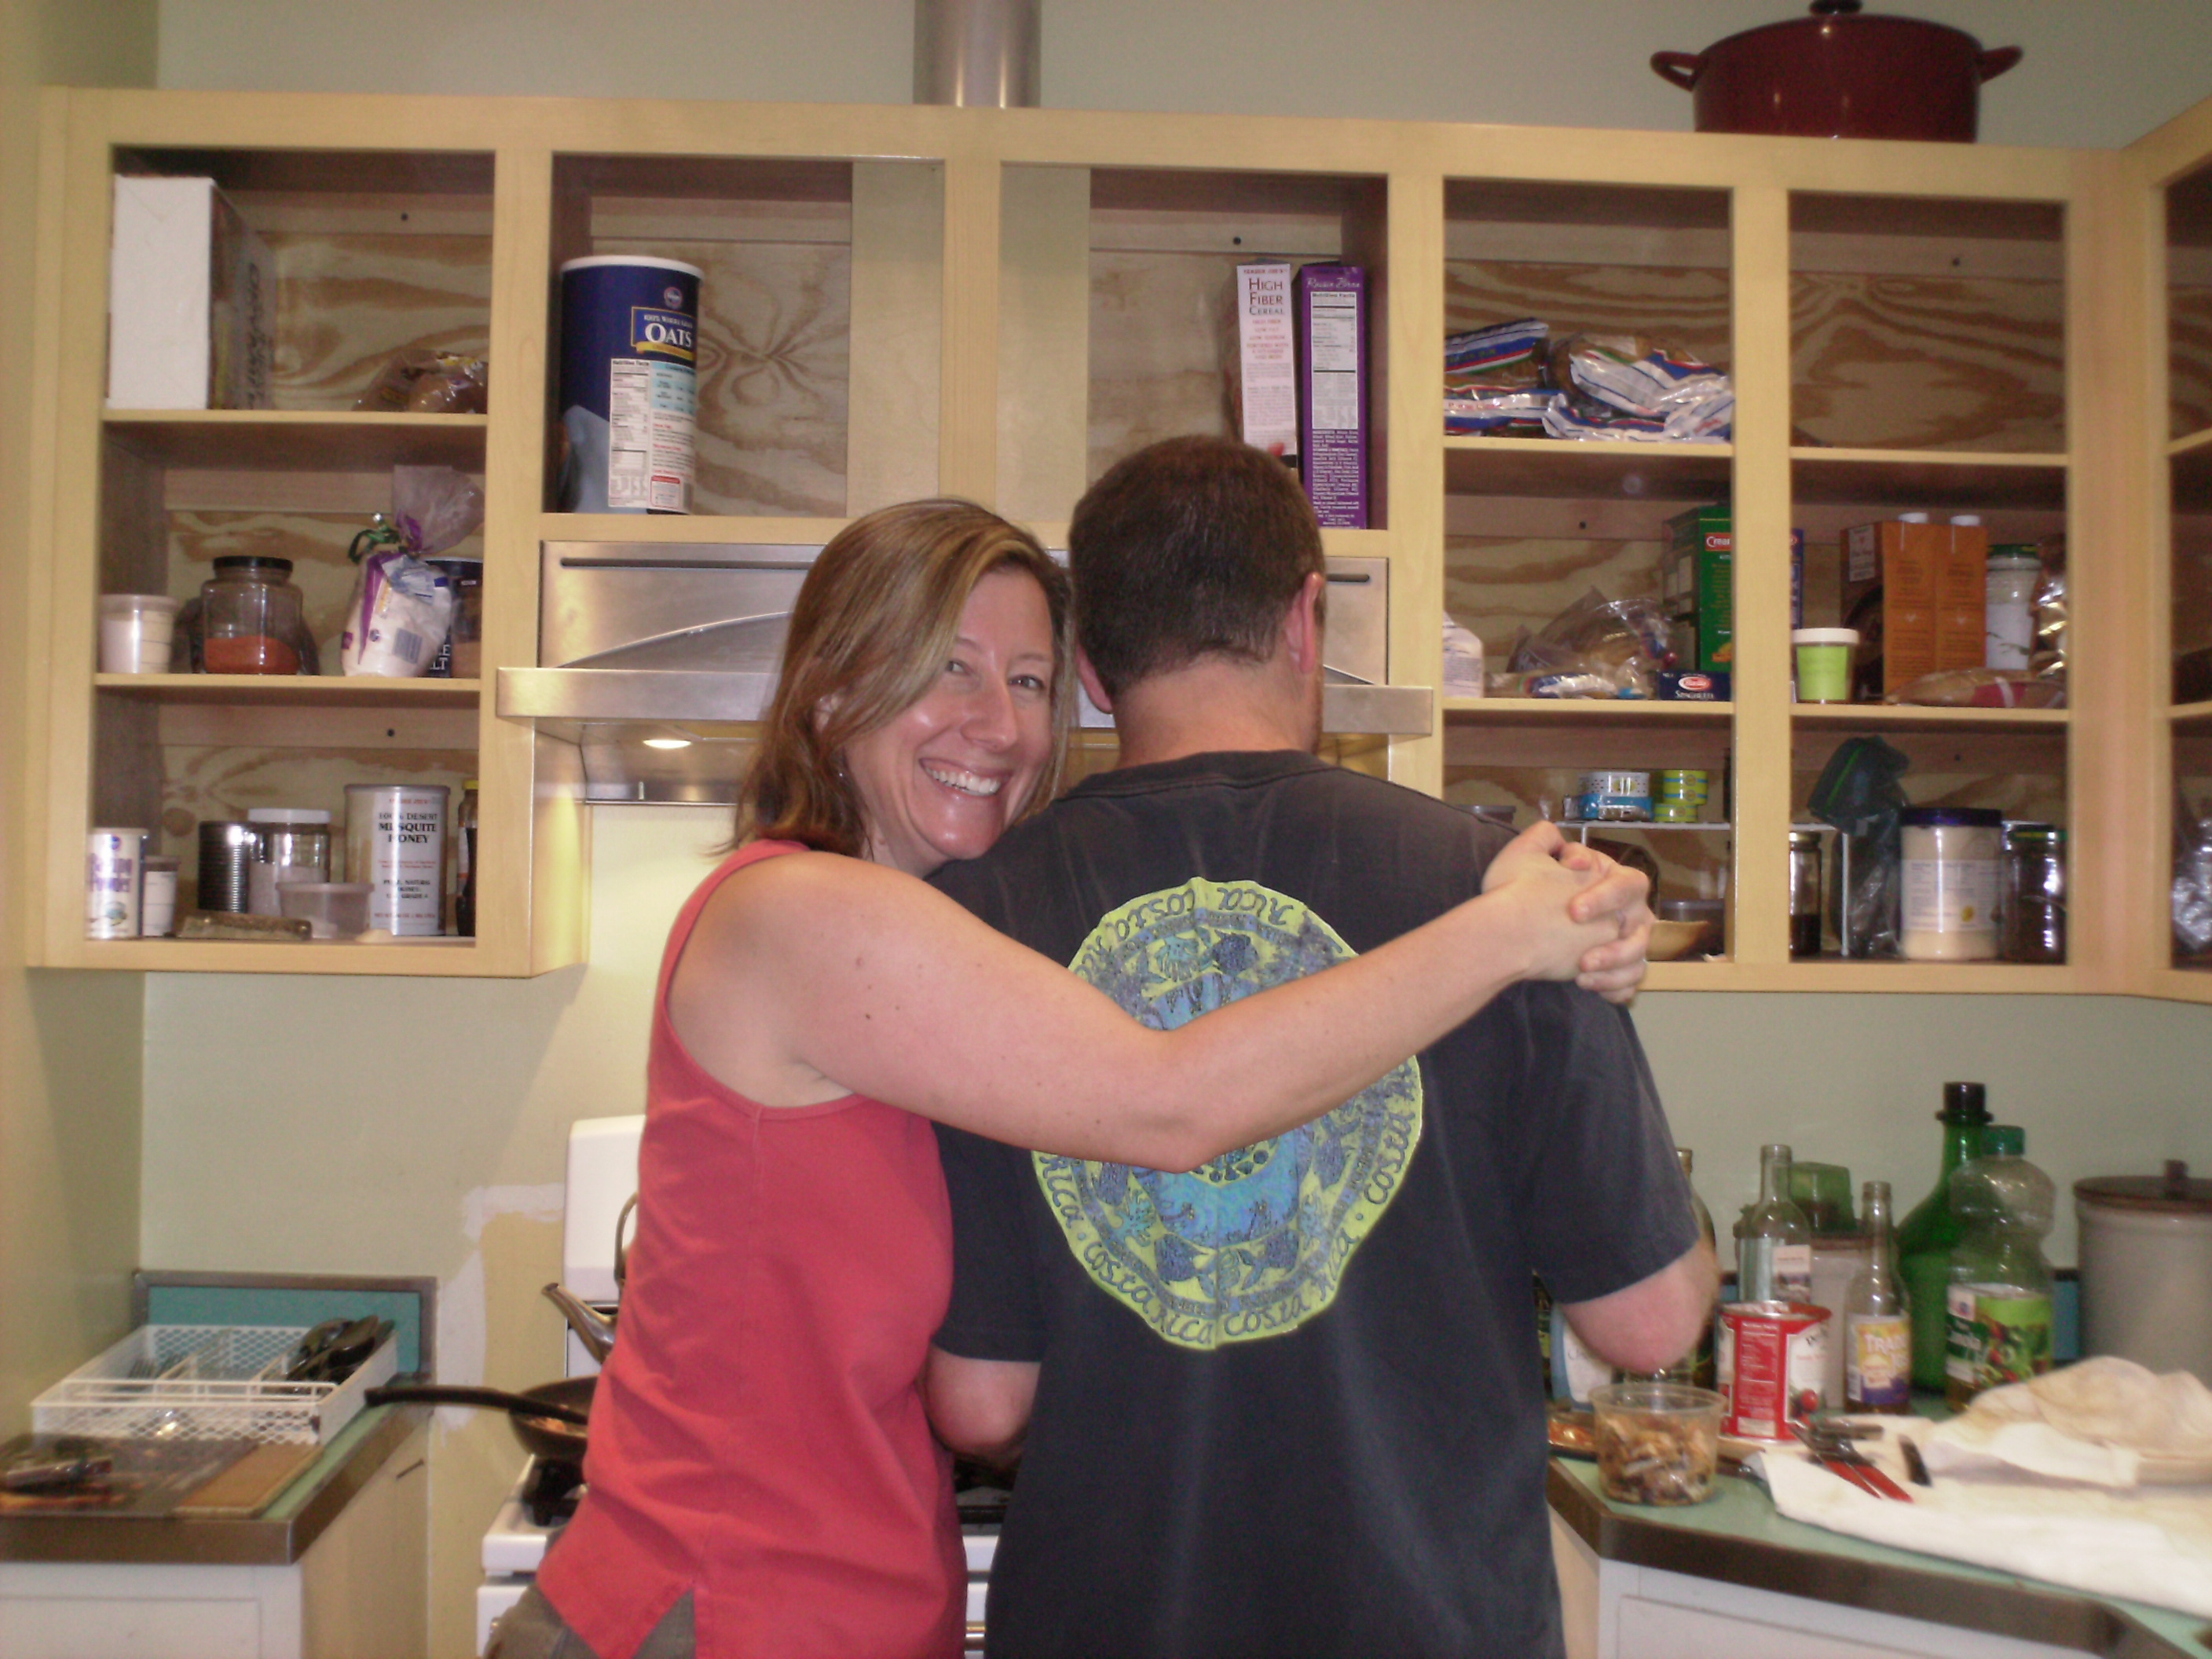 CLAY AND EMILY IN THE KITCHEN--CUTE COUPLE